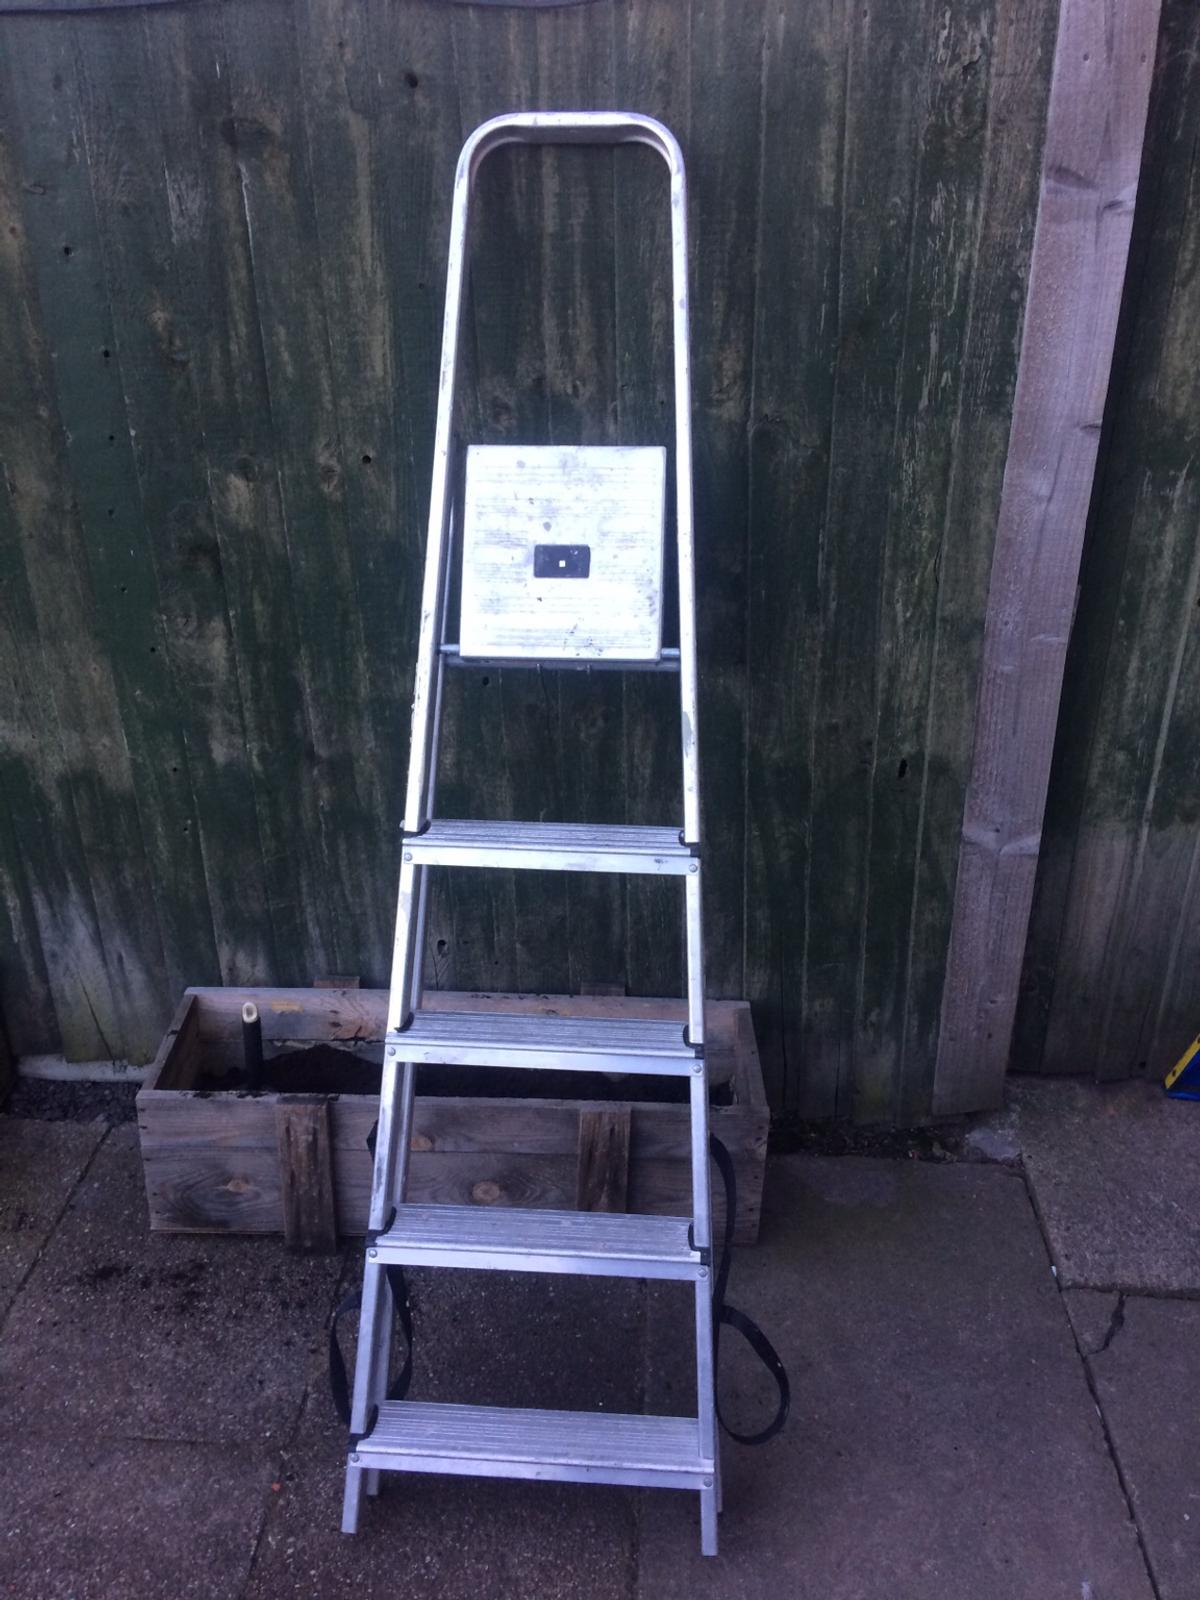 Prime Abru Werner Step Ladder In Dy4 Sandwell For 15 00 For Sale Bralicious Painted Fabric Chair Ideas Braliciousco